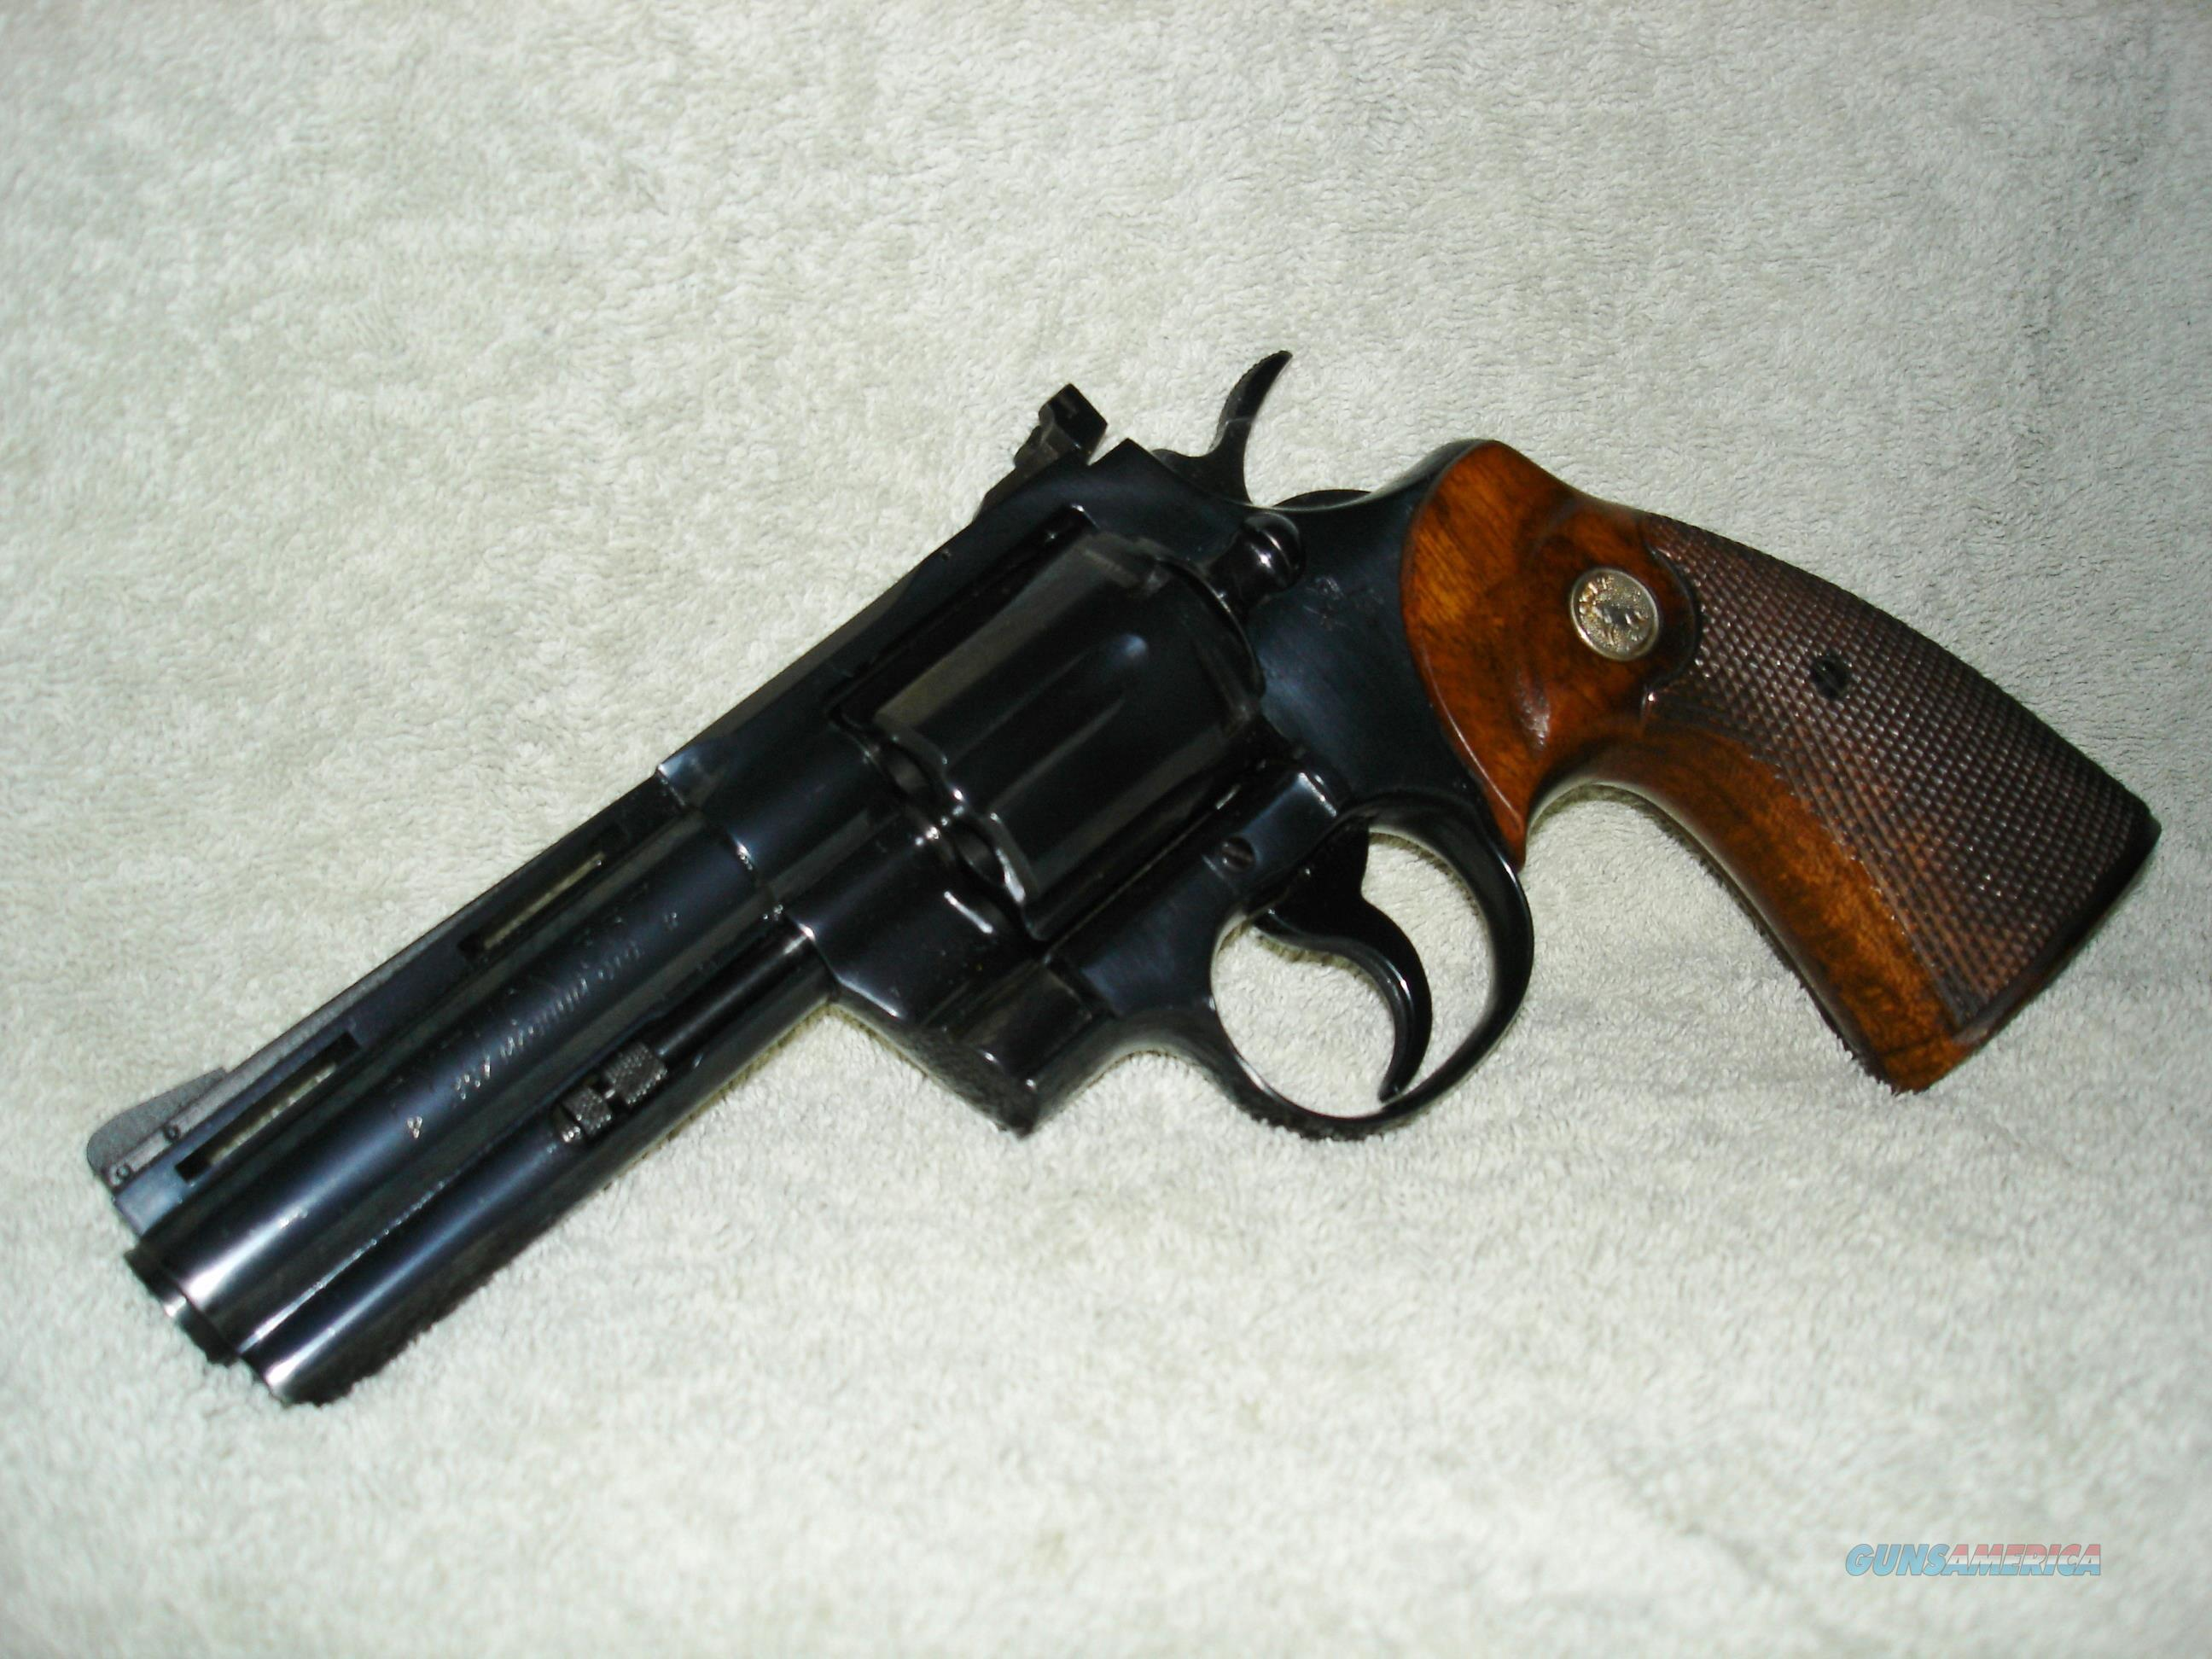 "Colt Python 1966 MANUFACTURE .357 Mag./.38 Spec., 4"" Barrel, Unfired/Near New Condition, Collectible  Guns > Pistols > Collectible Revolvers"